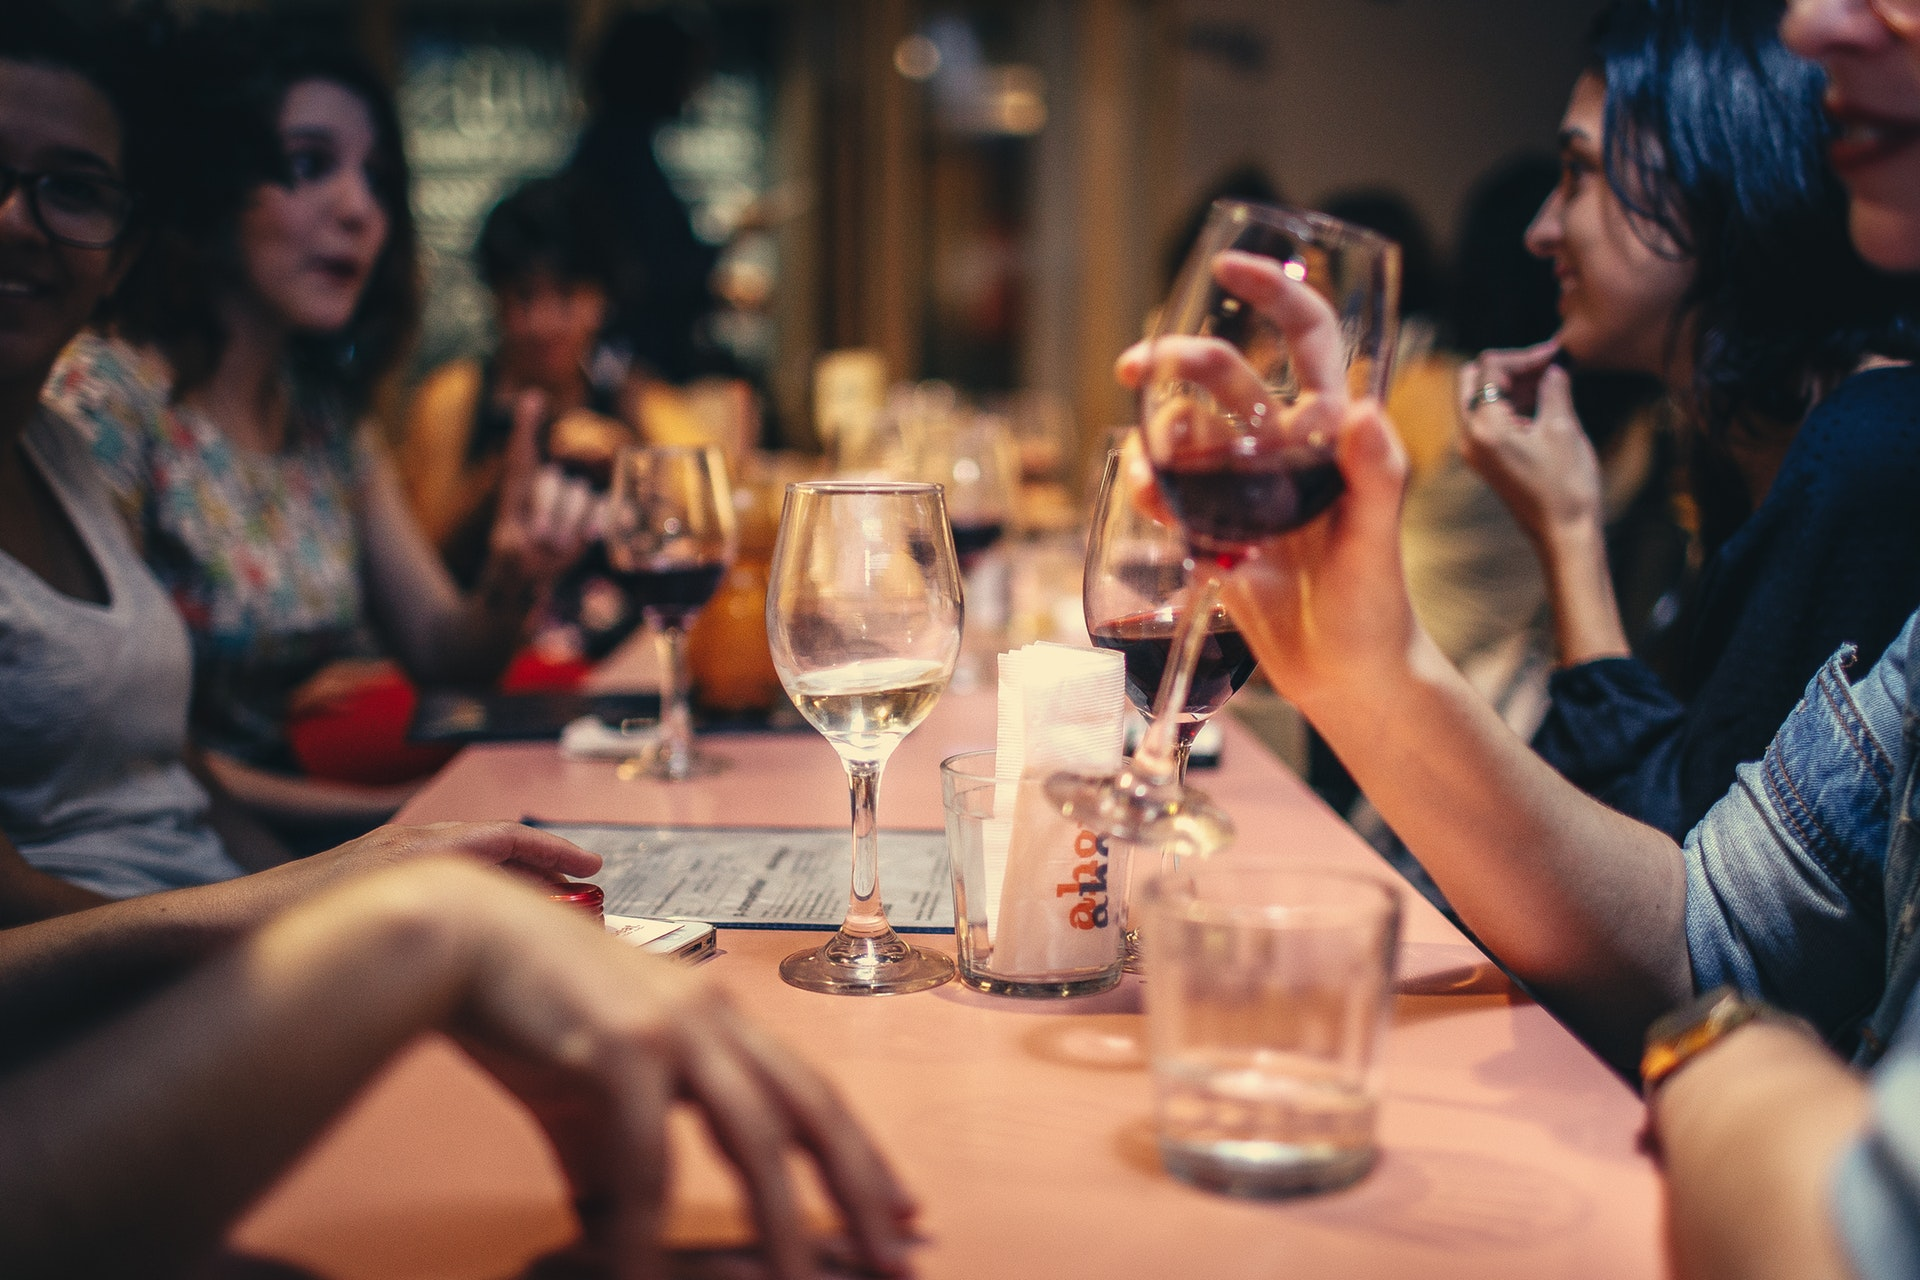 Group of single women drinking wine at a restaurant